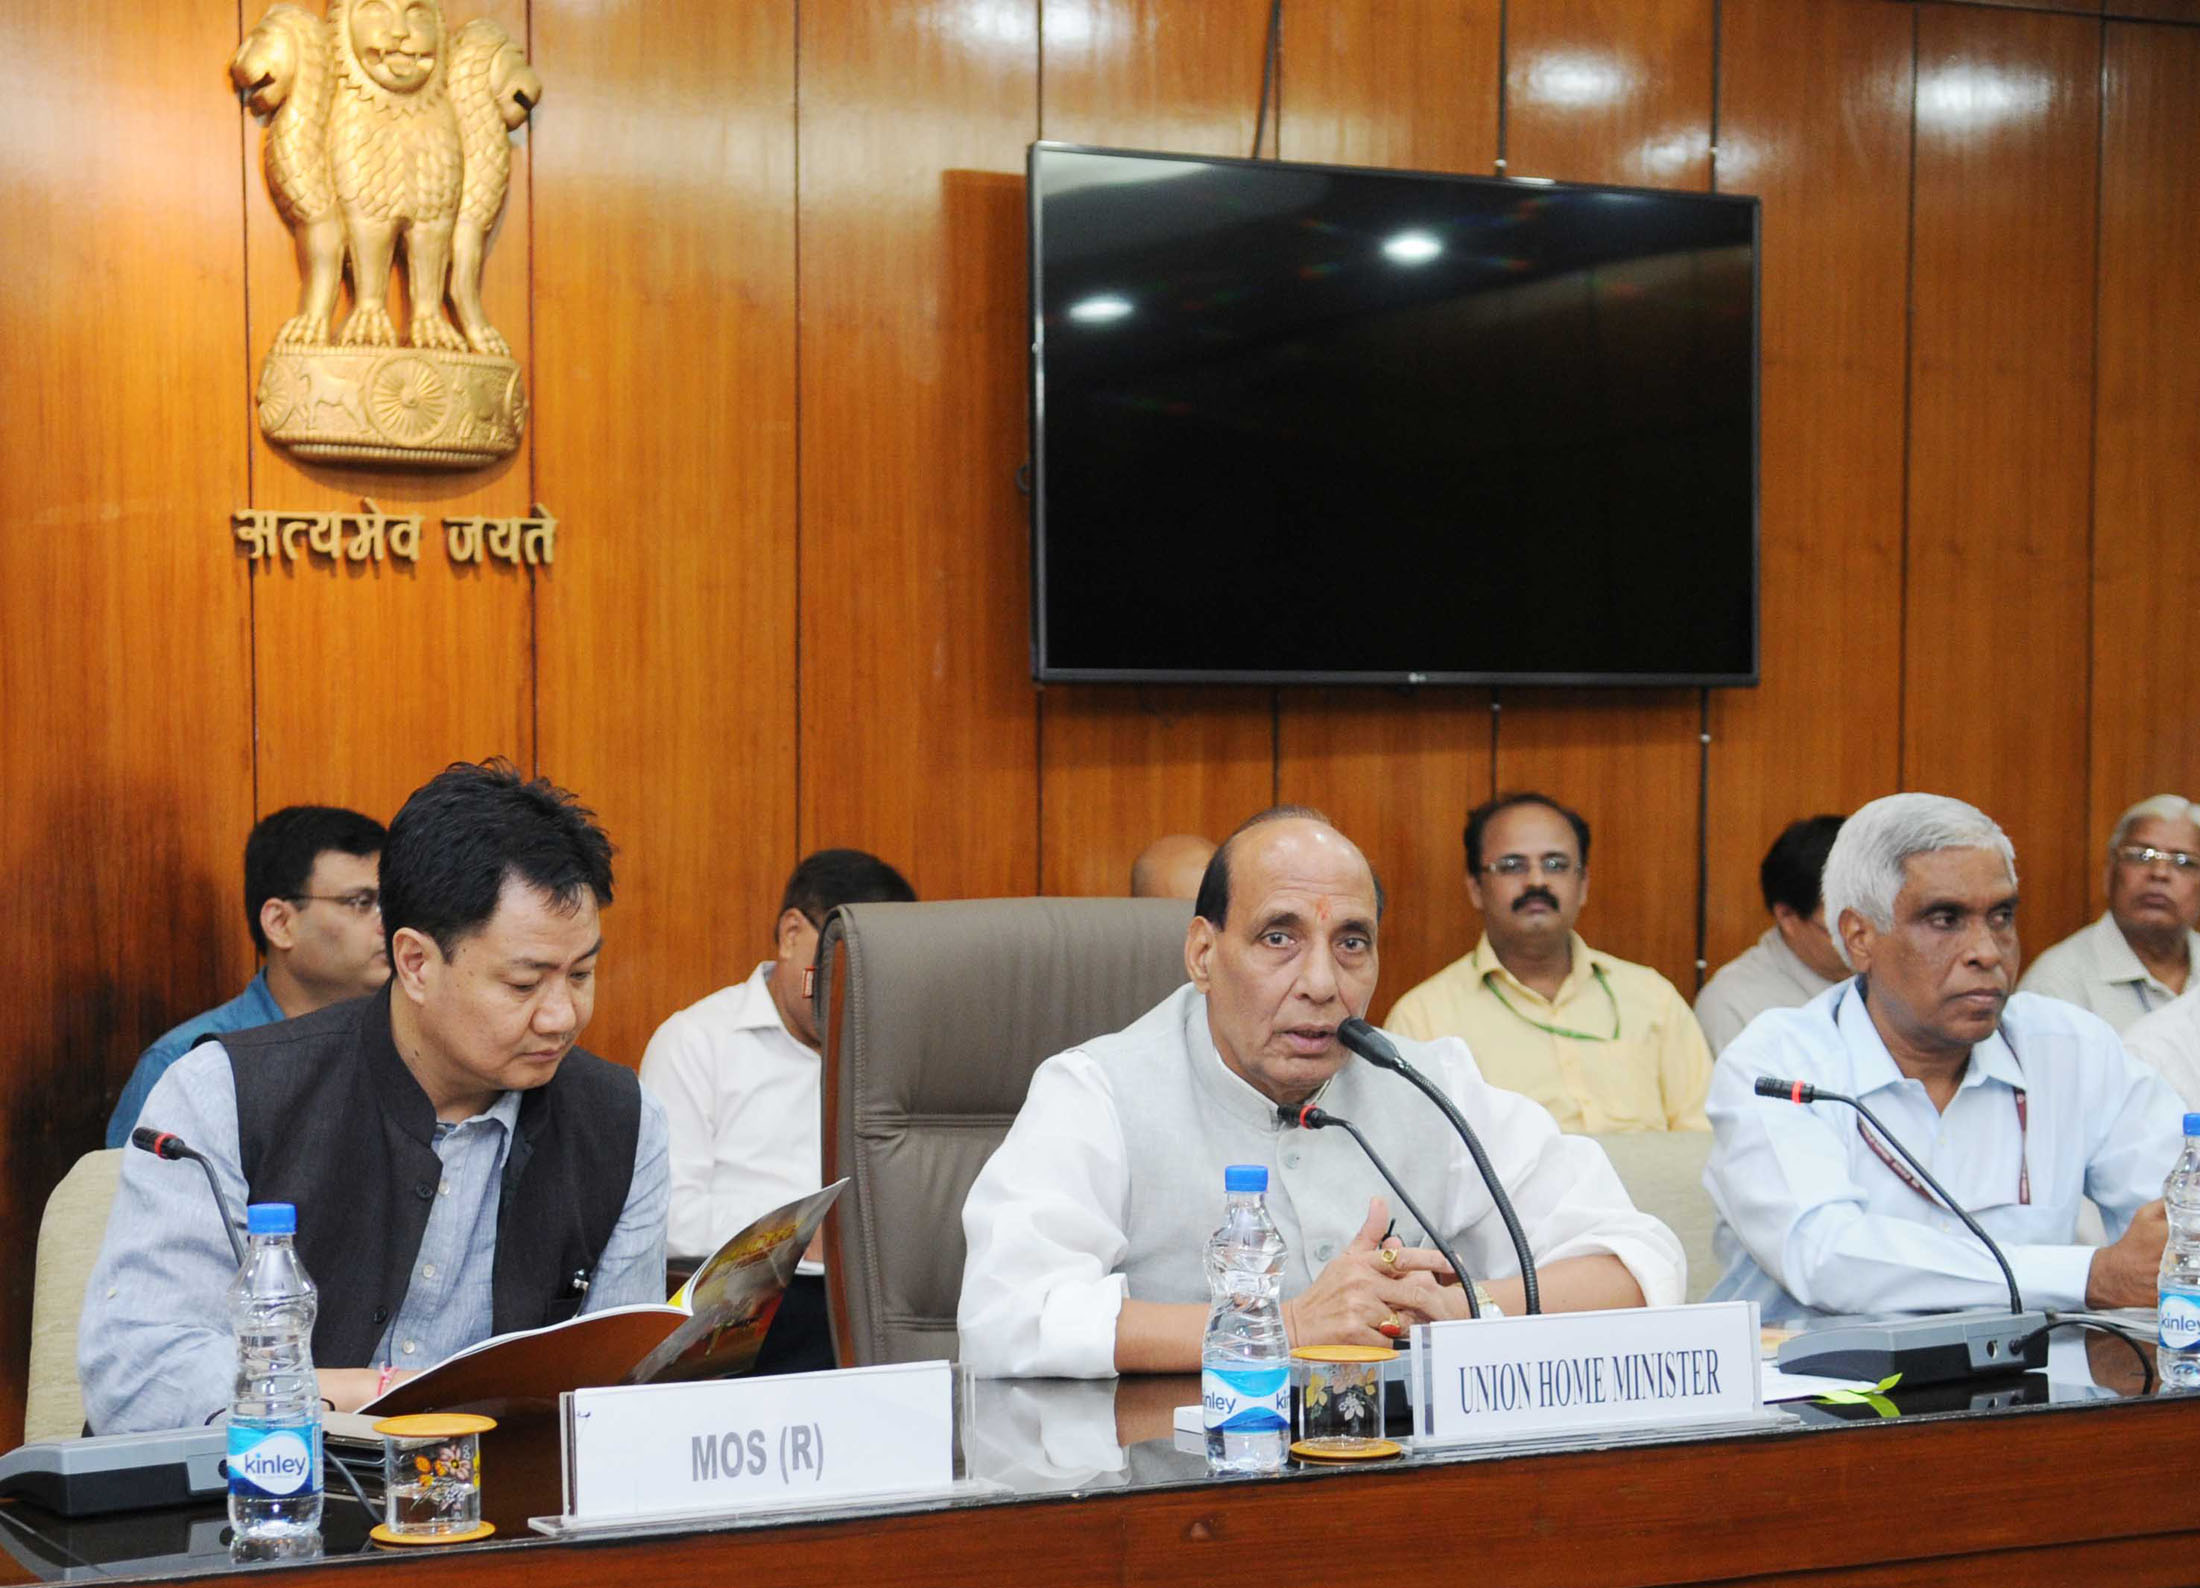 The Union Home Minister, Shri Rajnath Singh addressing at the release of a comic book the saga of Valour and sacrifice of CRPF at the Sardar Post, in New Delhi on September 24, 2015. The Minister of State for Home Affairs, Shri Kiren Rijiju is also seen.